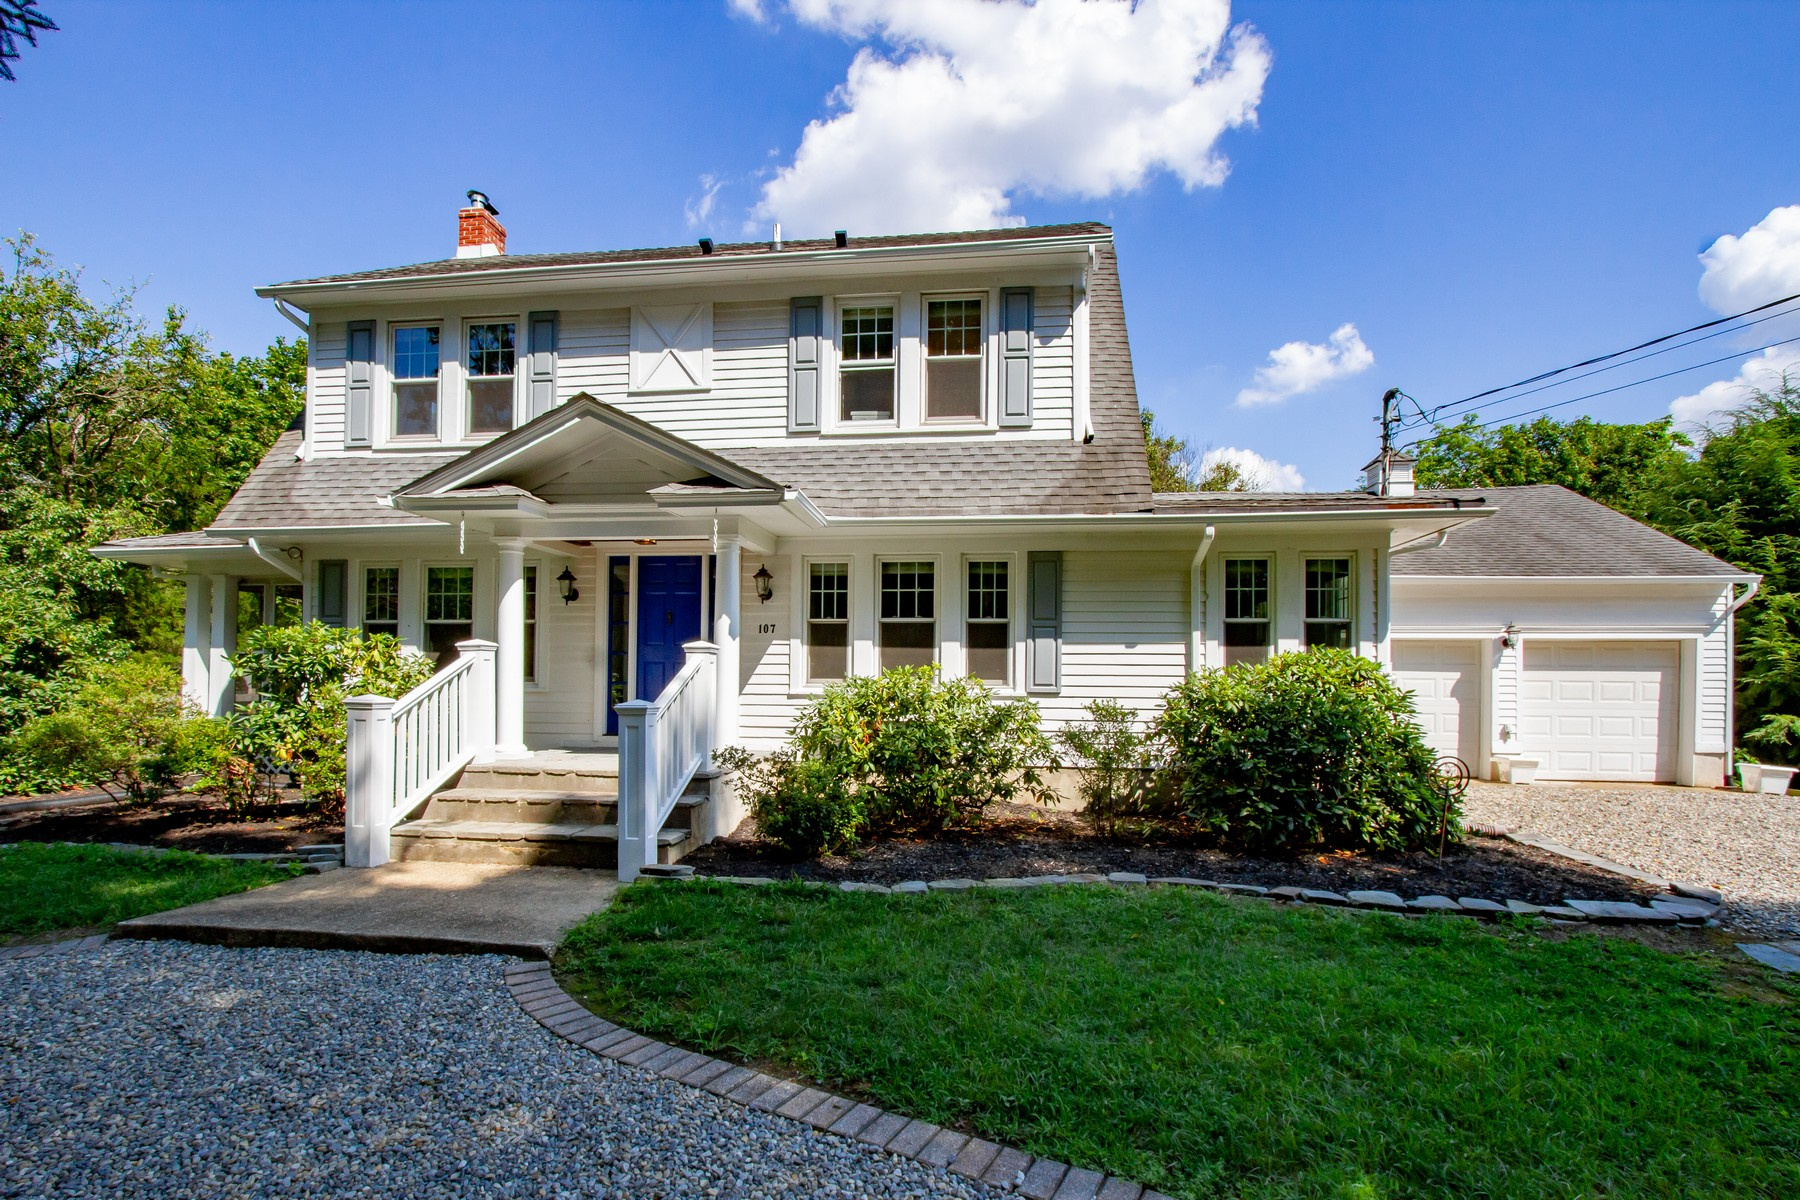 Single Family Homes for Active at Farmhouse Chic 107 Brown Rd Howell, New Jersey 07731 United States